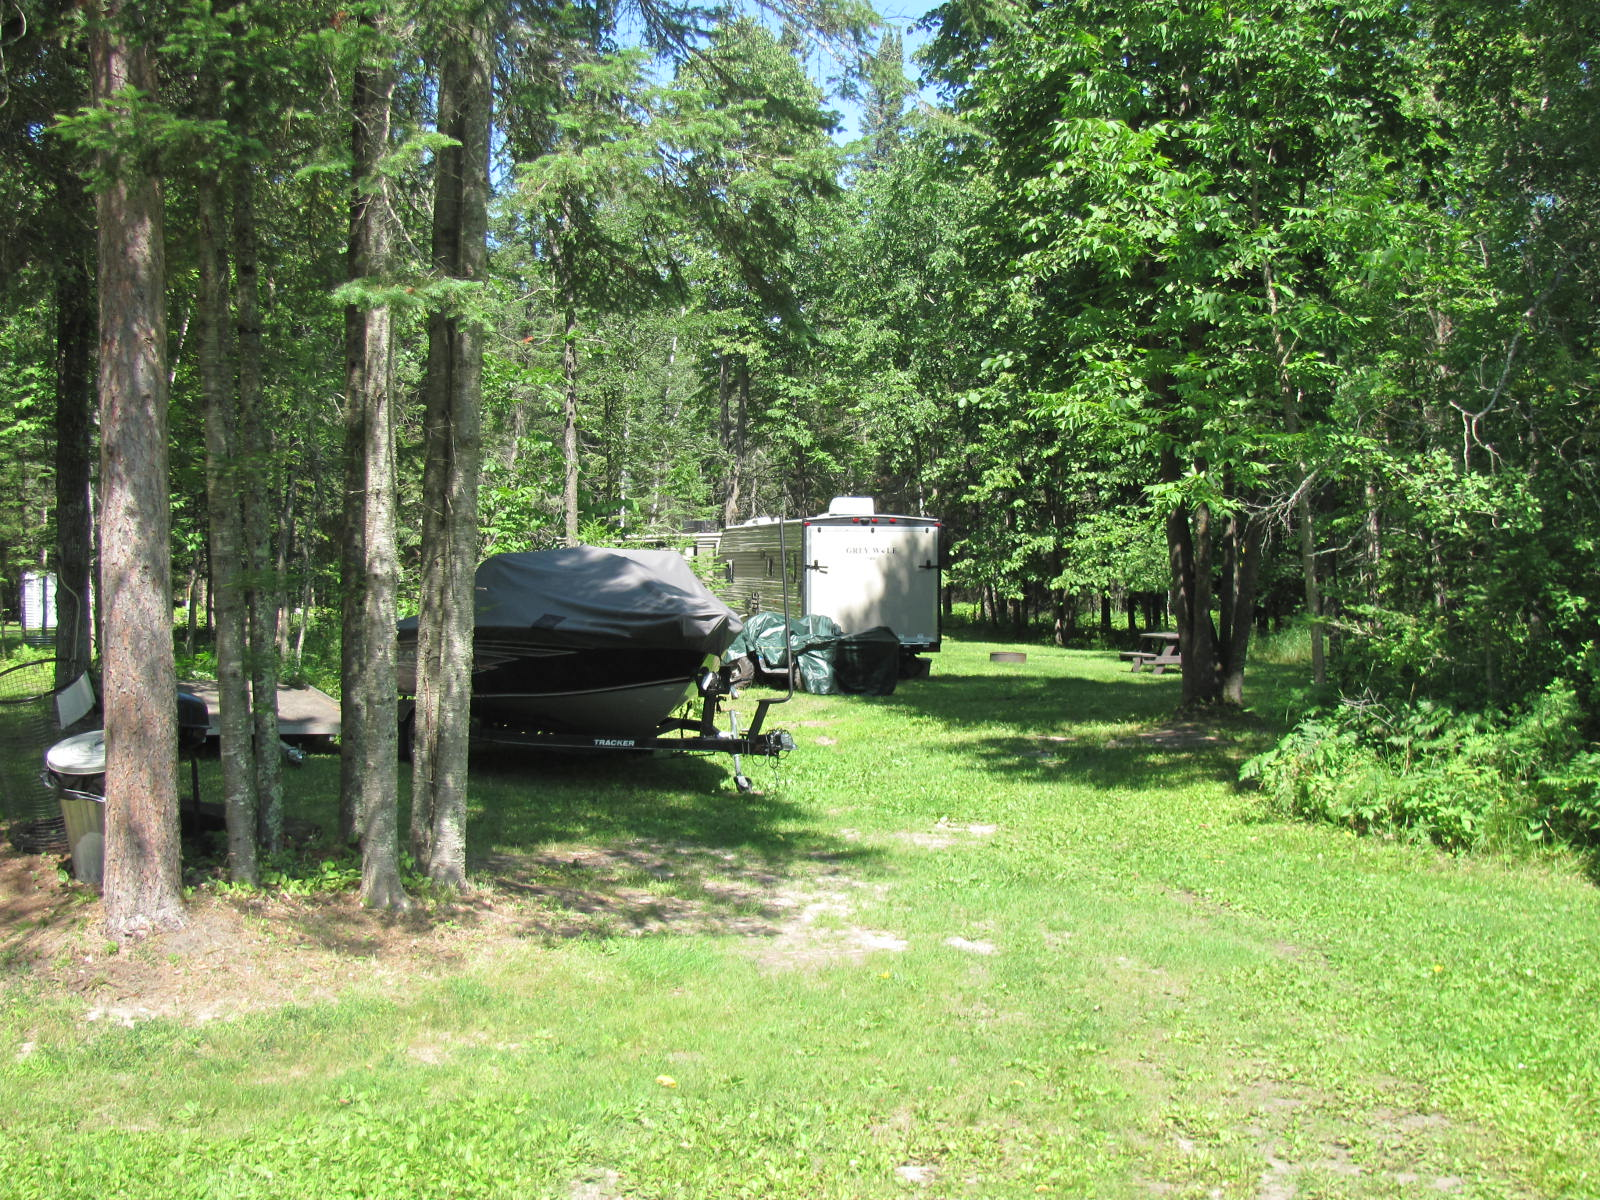 Vacation RV camper and boat.